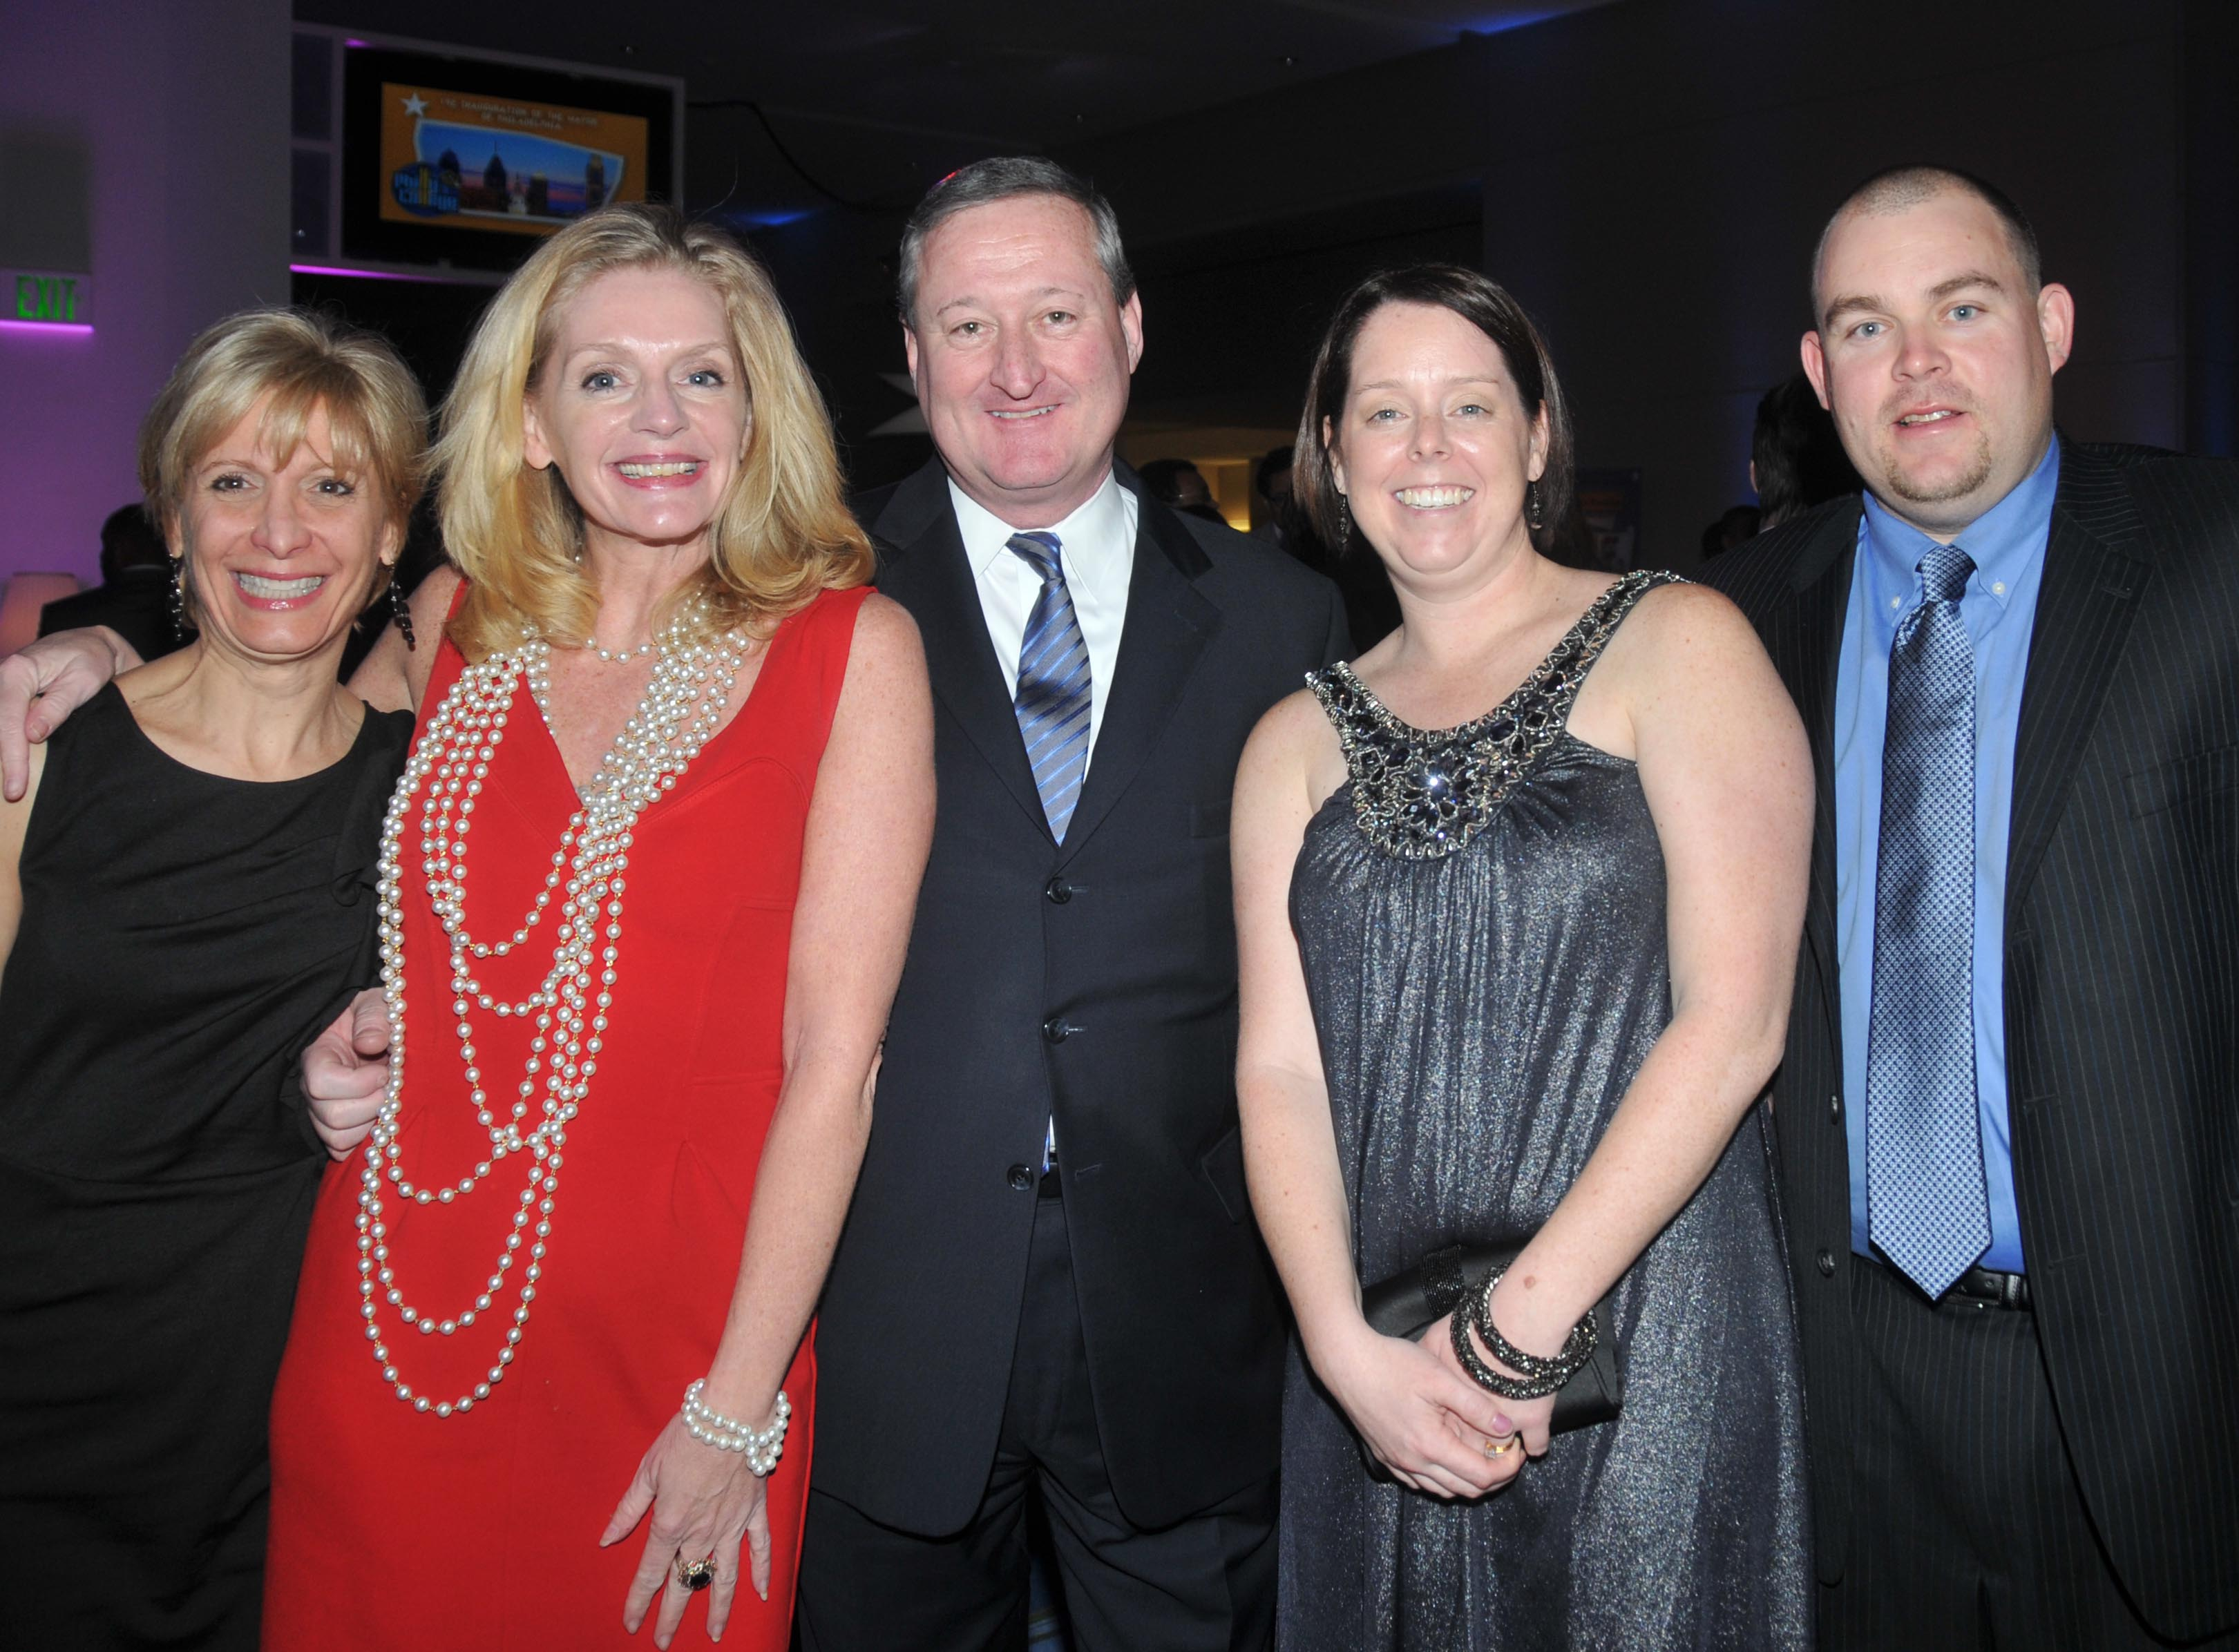 Diane Reott, Mollie McEnteer, then-Councilman James Kenney, and Beth and John Brennan at the 192nd Mayoral Inauguration for Michael Nutter in January 2012.